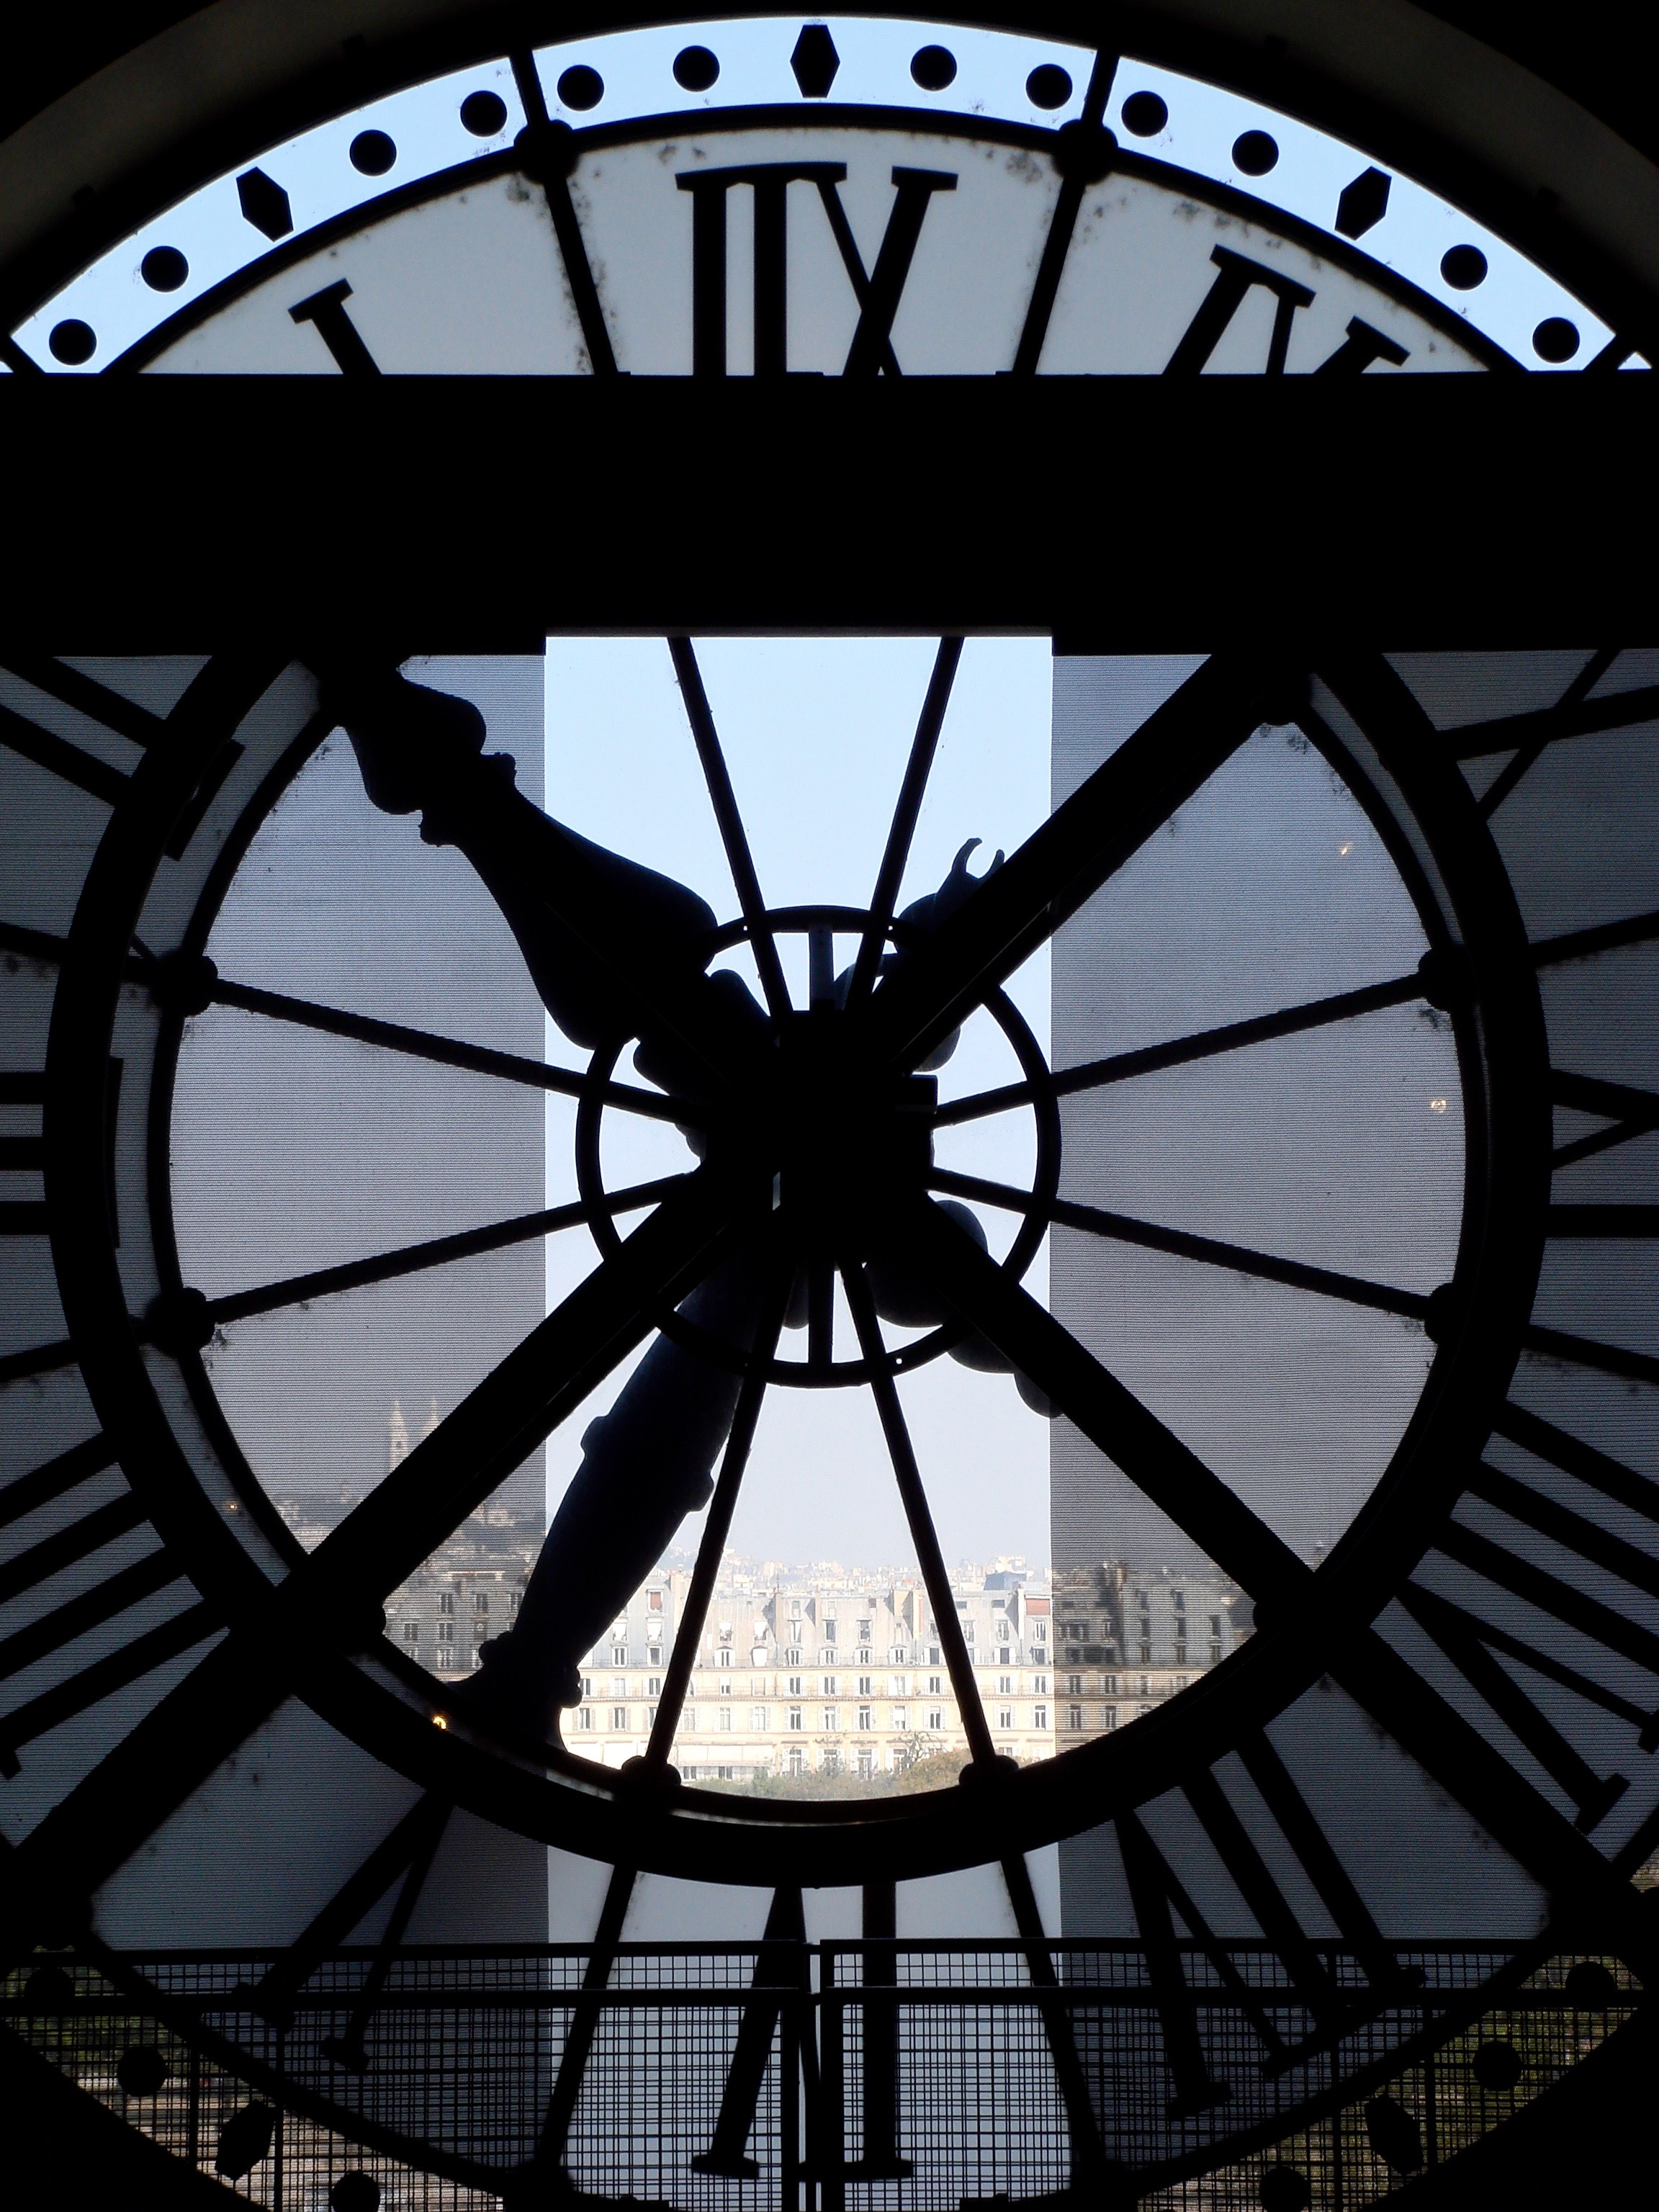 The view through the huge clock at the Musee d'Orsay in Paris, France